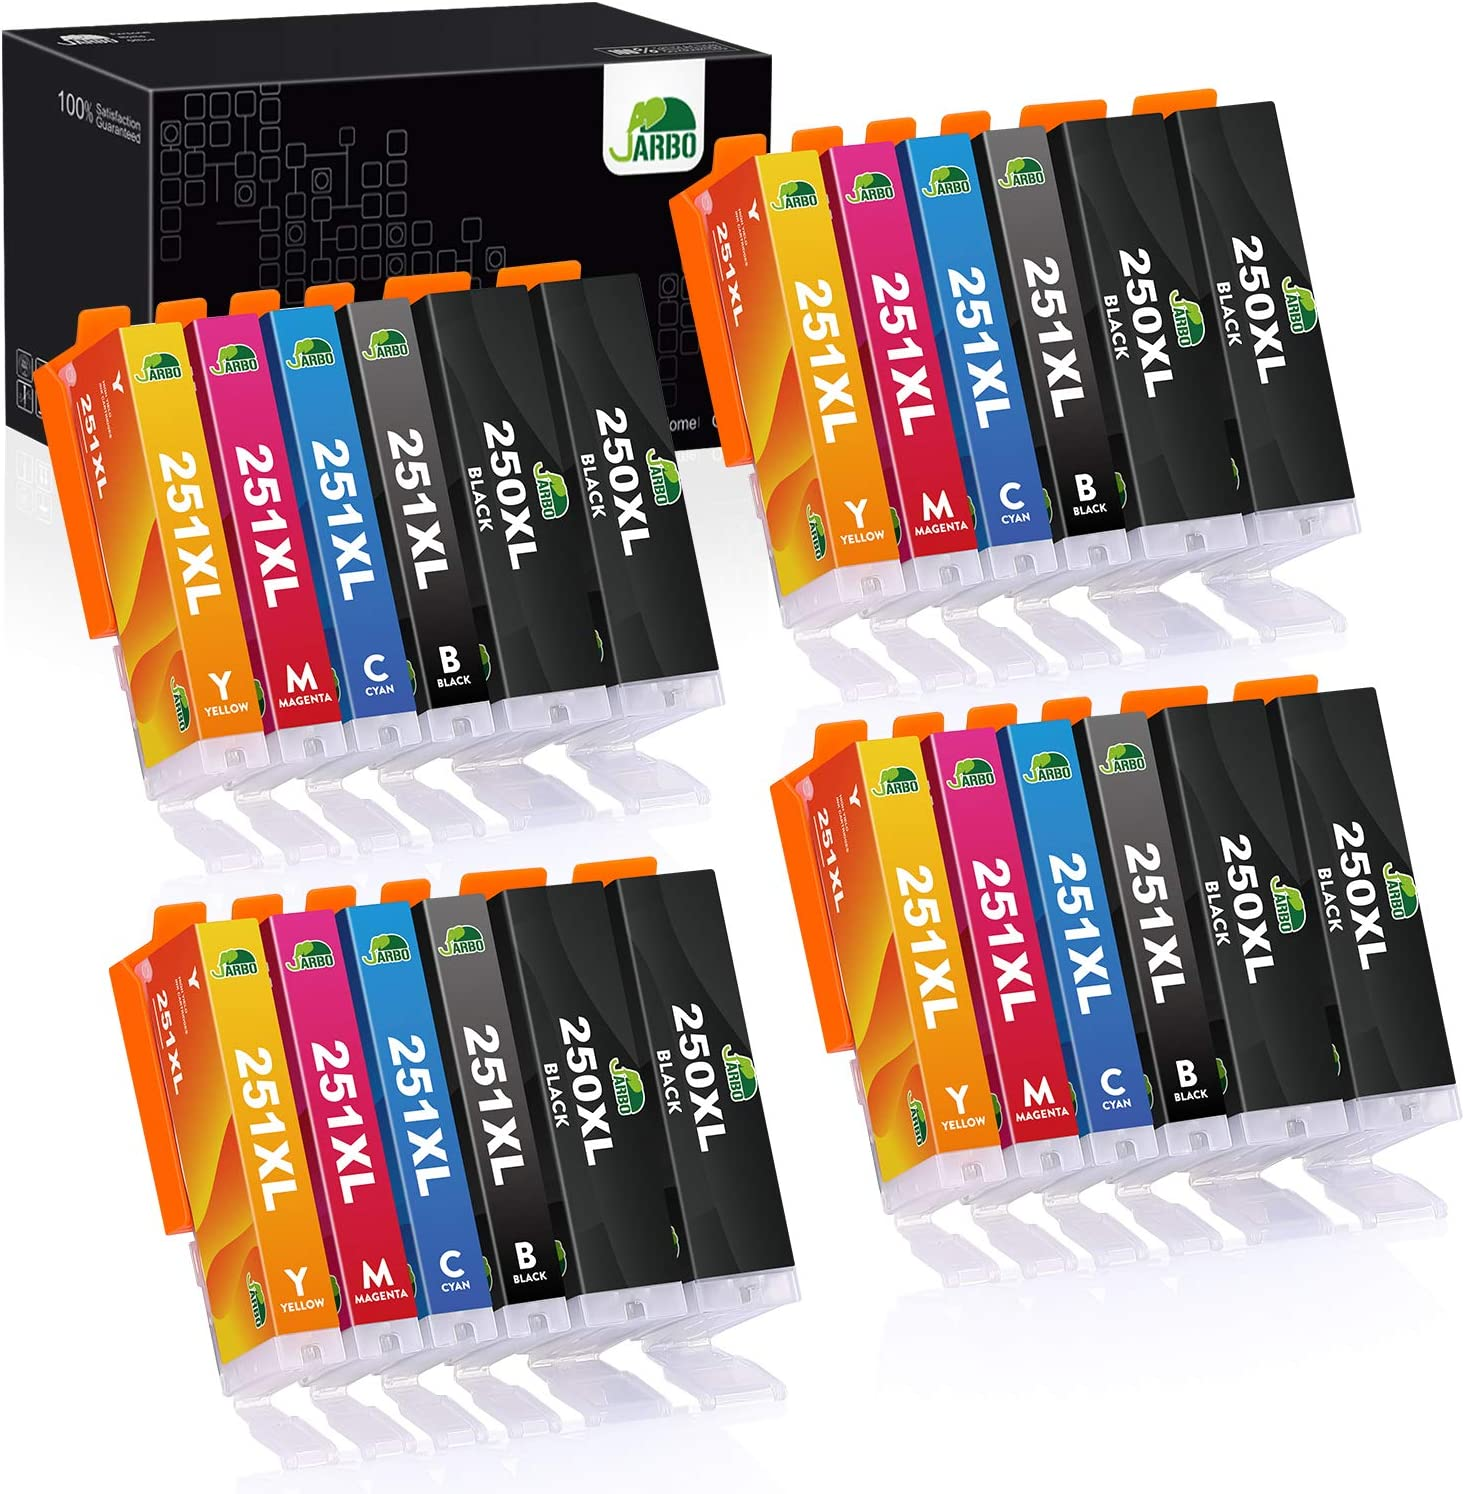 JARBO Compatible Ink Cartridge Replacement for Canon PGI-250XL CLI-251XL, 24 Packs, Use with Canon PIXMA MX922 MX722 MG5420 MG5520 MG5620 MG6620 IP7220 IX6820 Printer